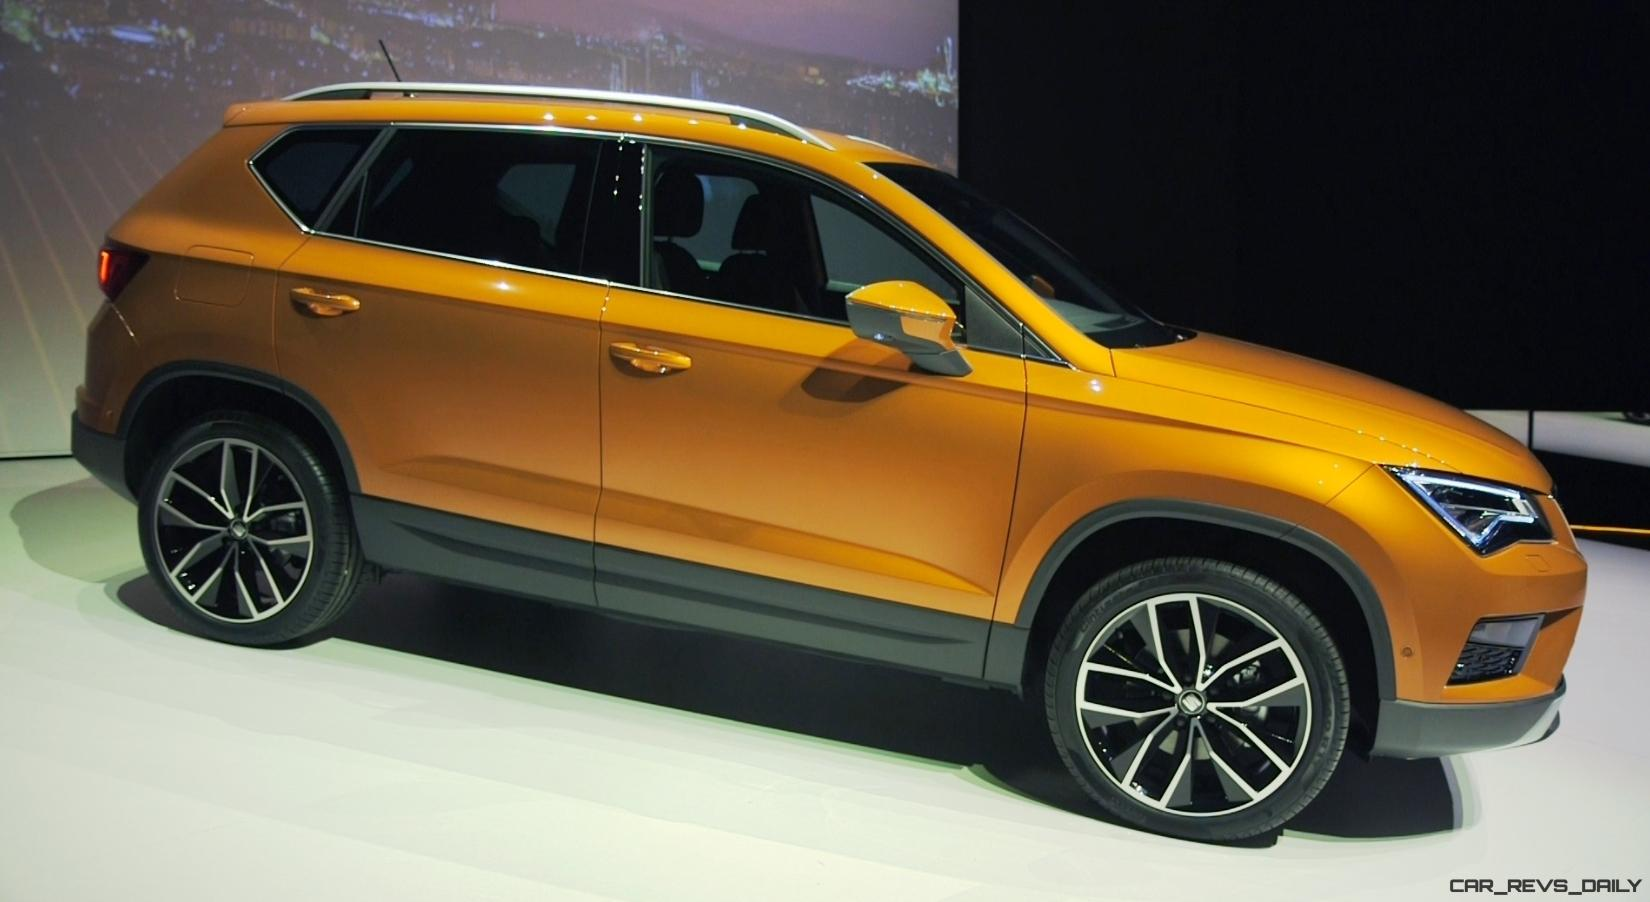 Suv: Sharp Spanish Marque's First SUV Is A